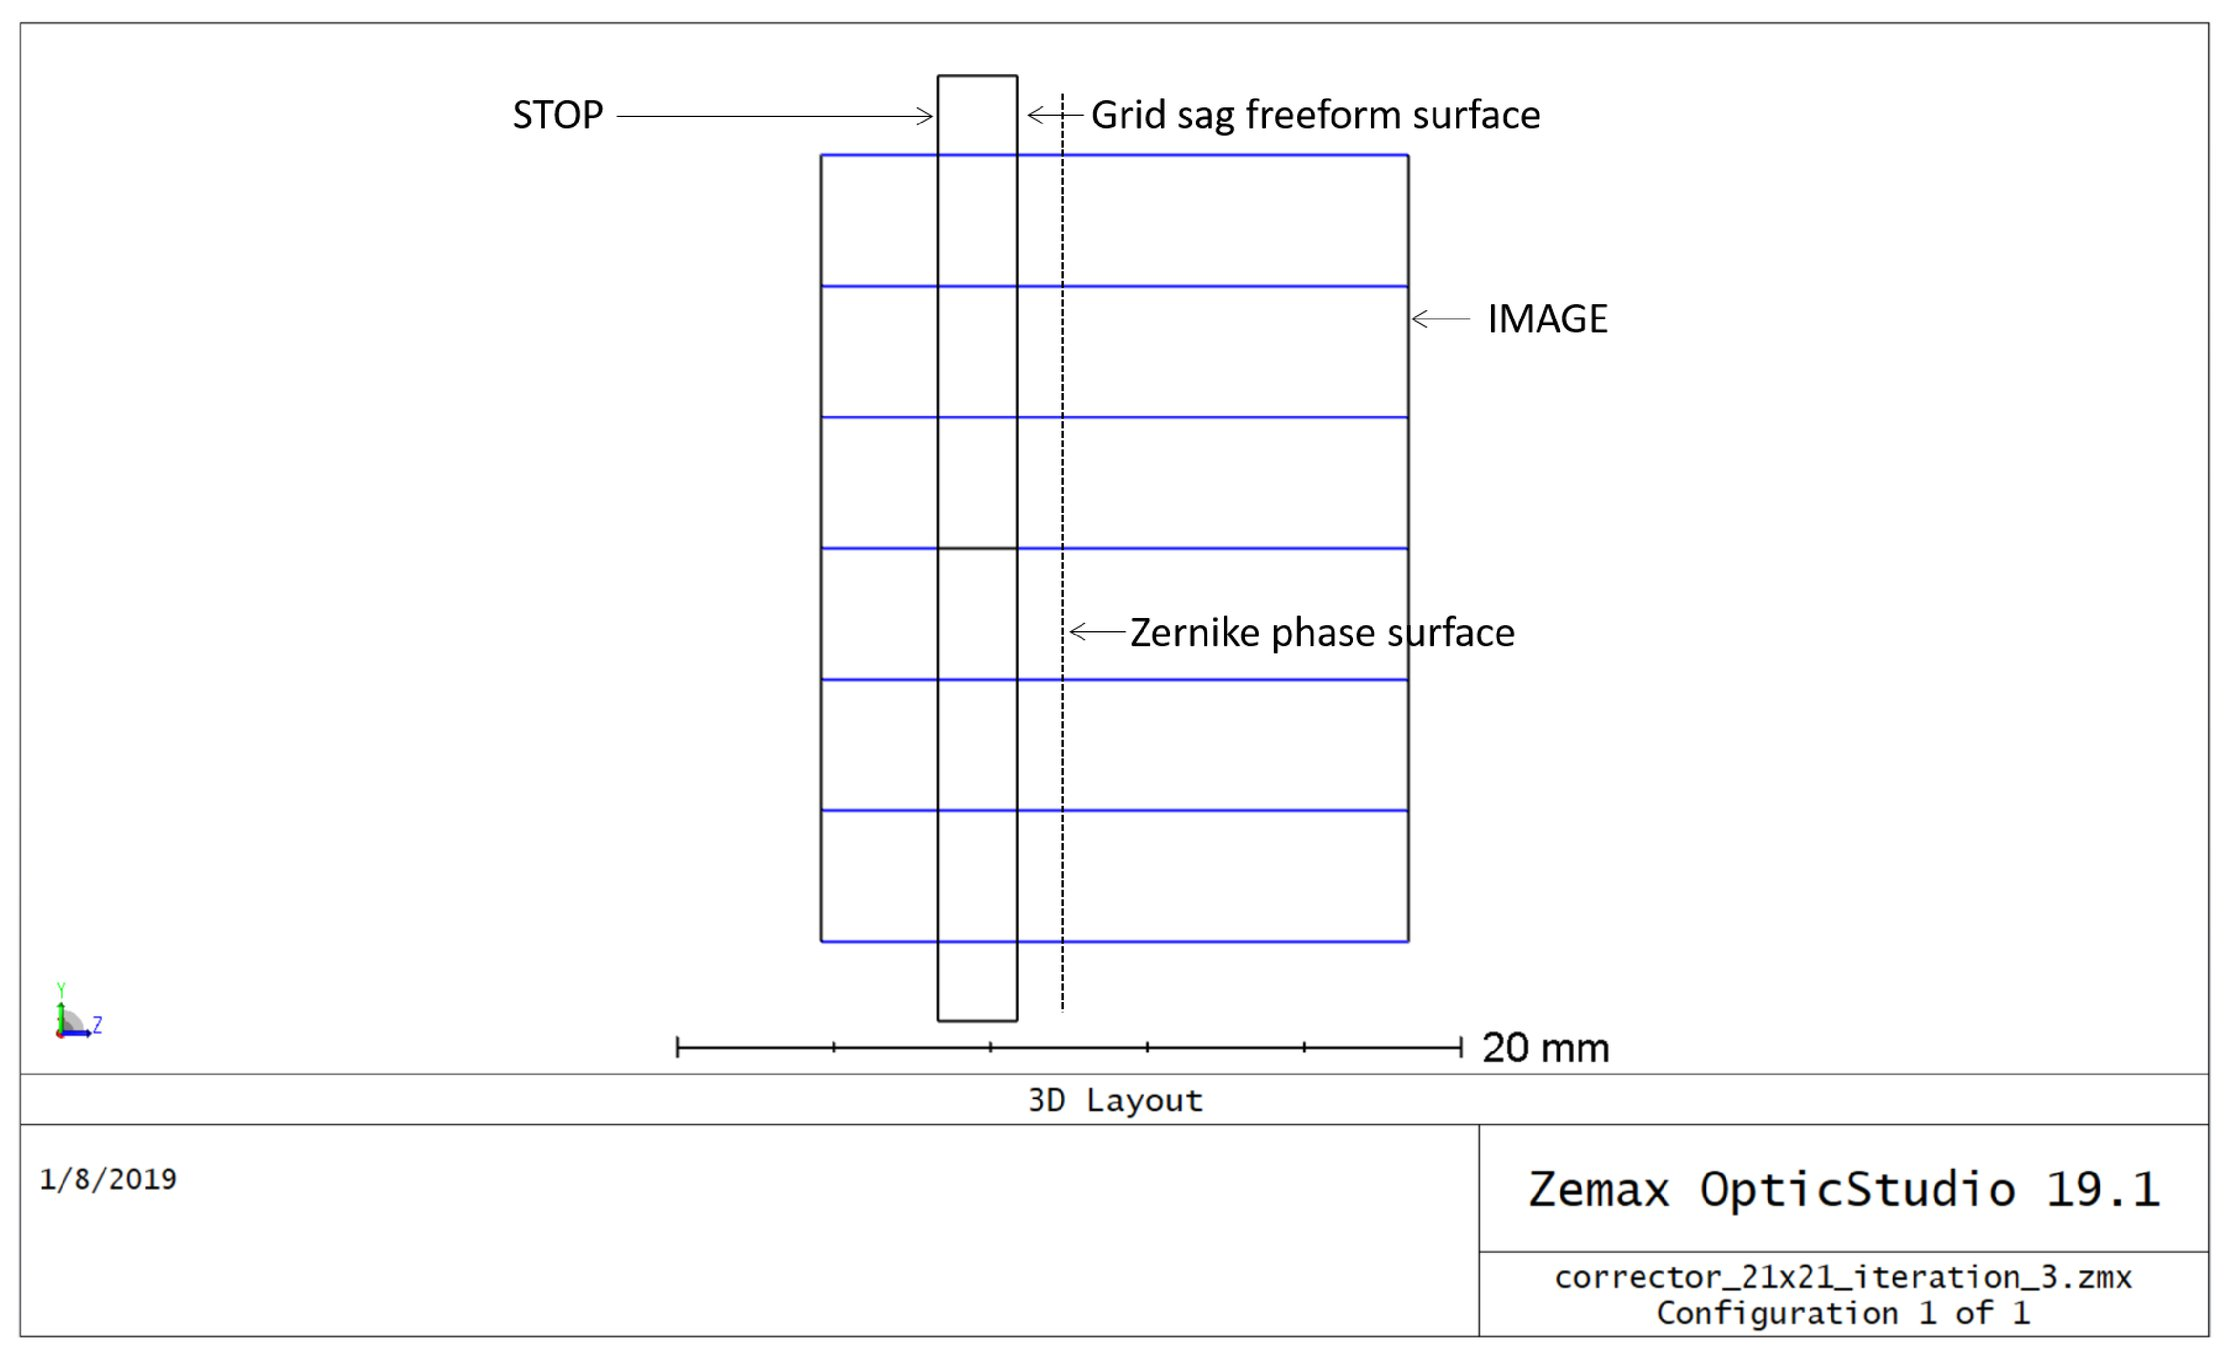 Lens design using grid-based surface optimization